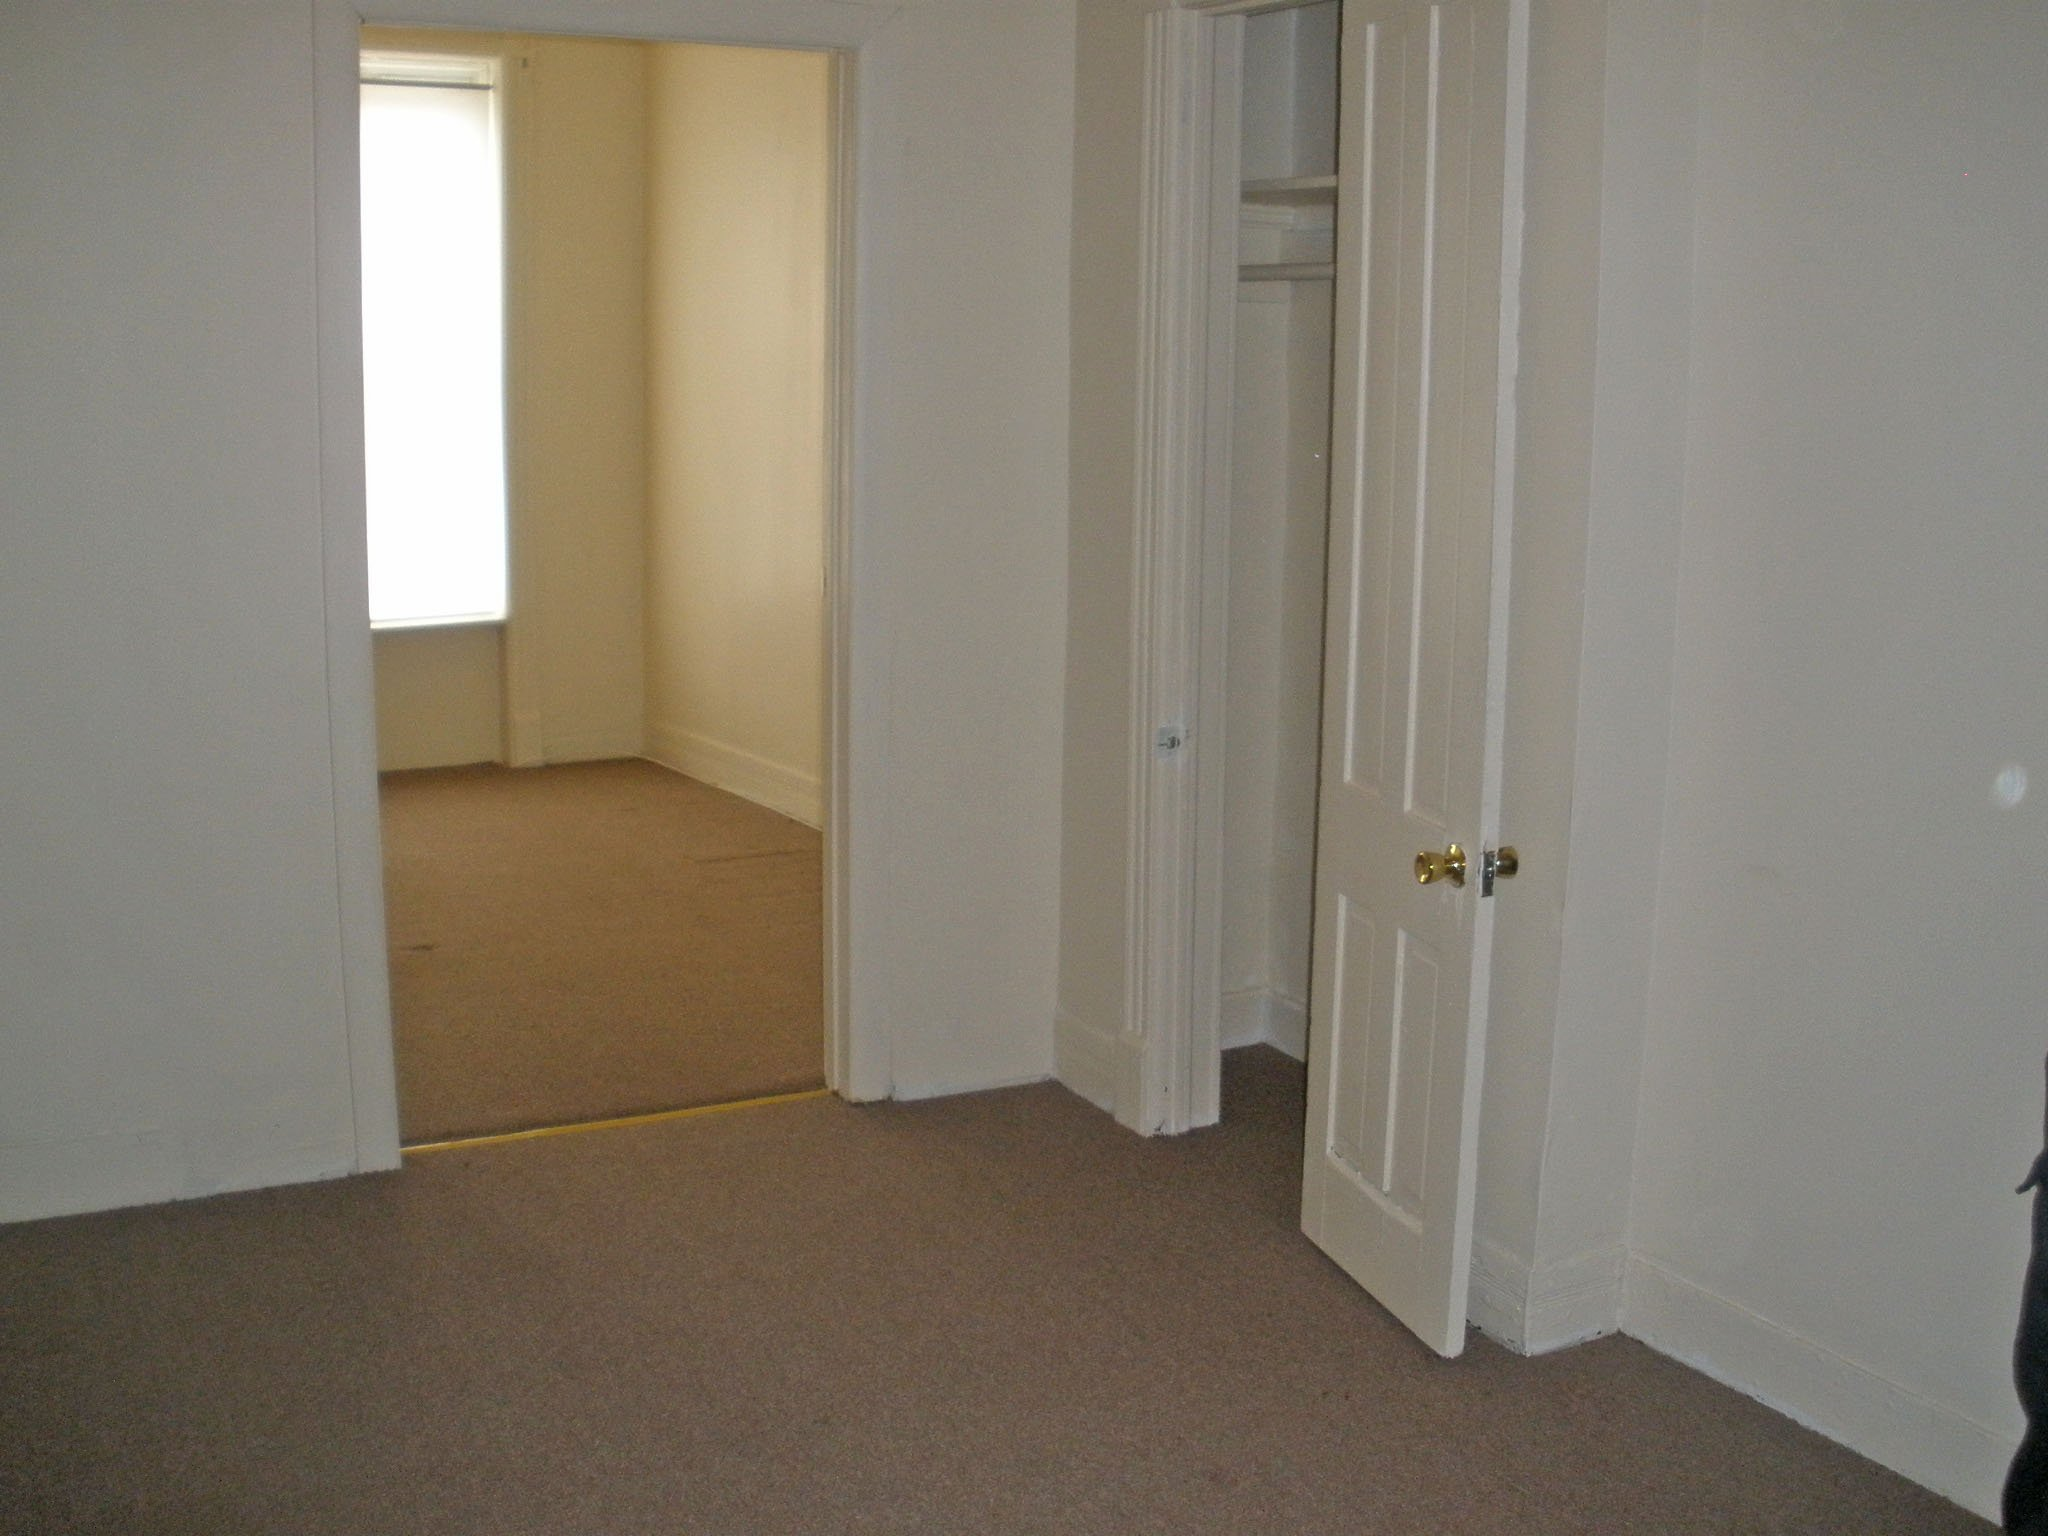 Bedford stuyvesant 2 bedroom apartment for rent brooklyn crg3109 for 2 bedroom apartments for rent in brooklyn by owner